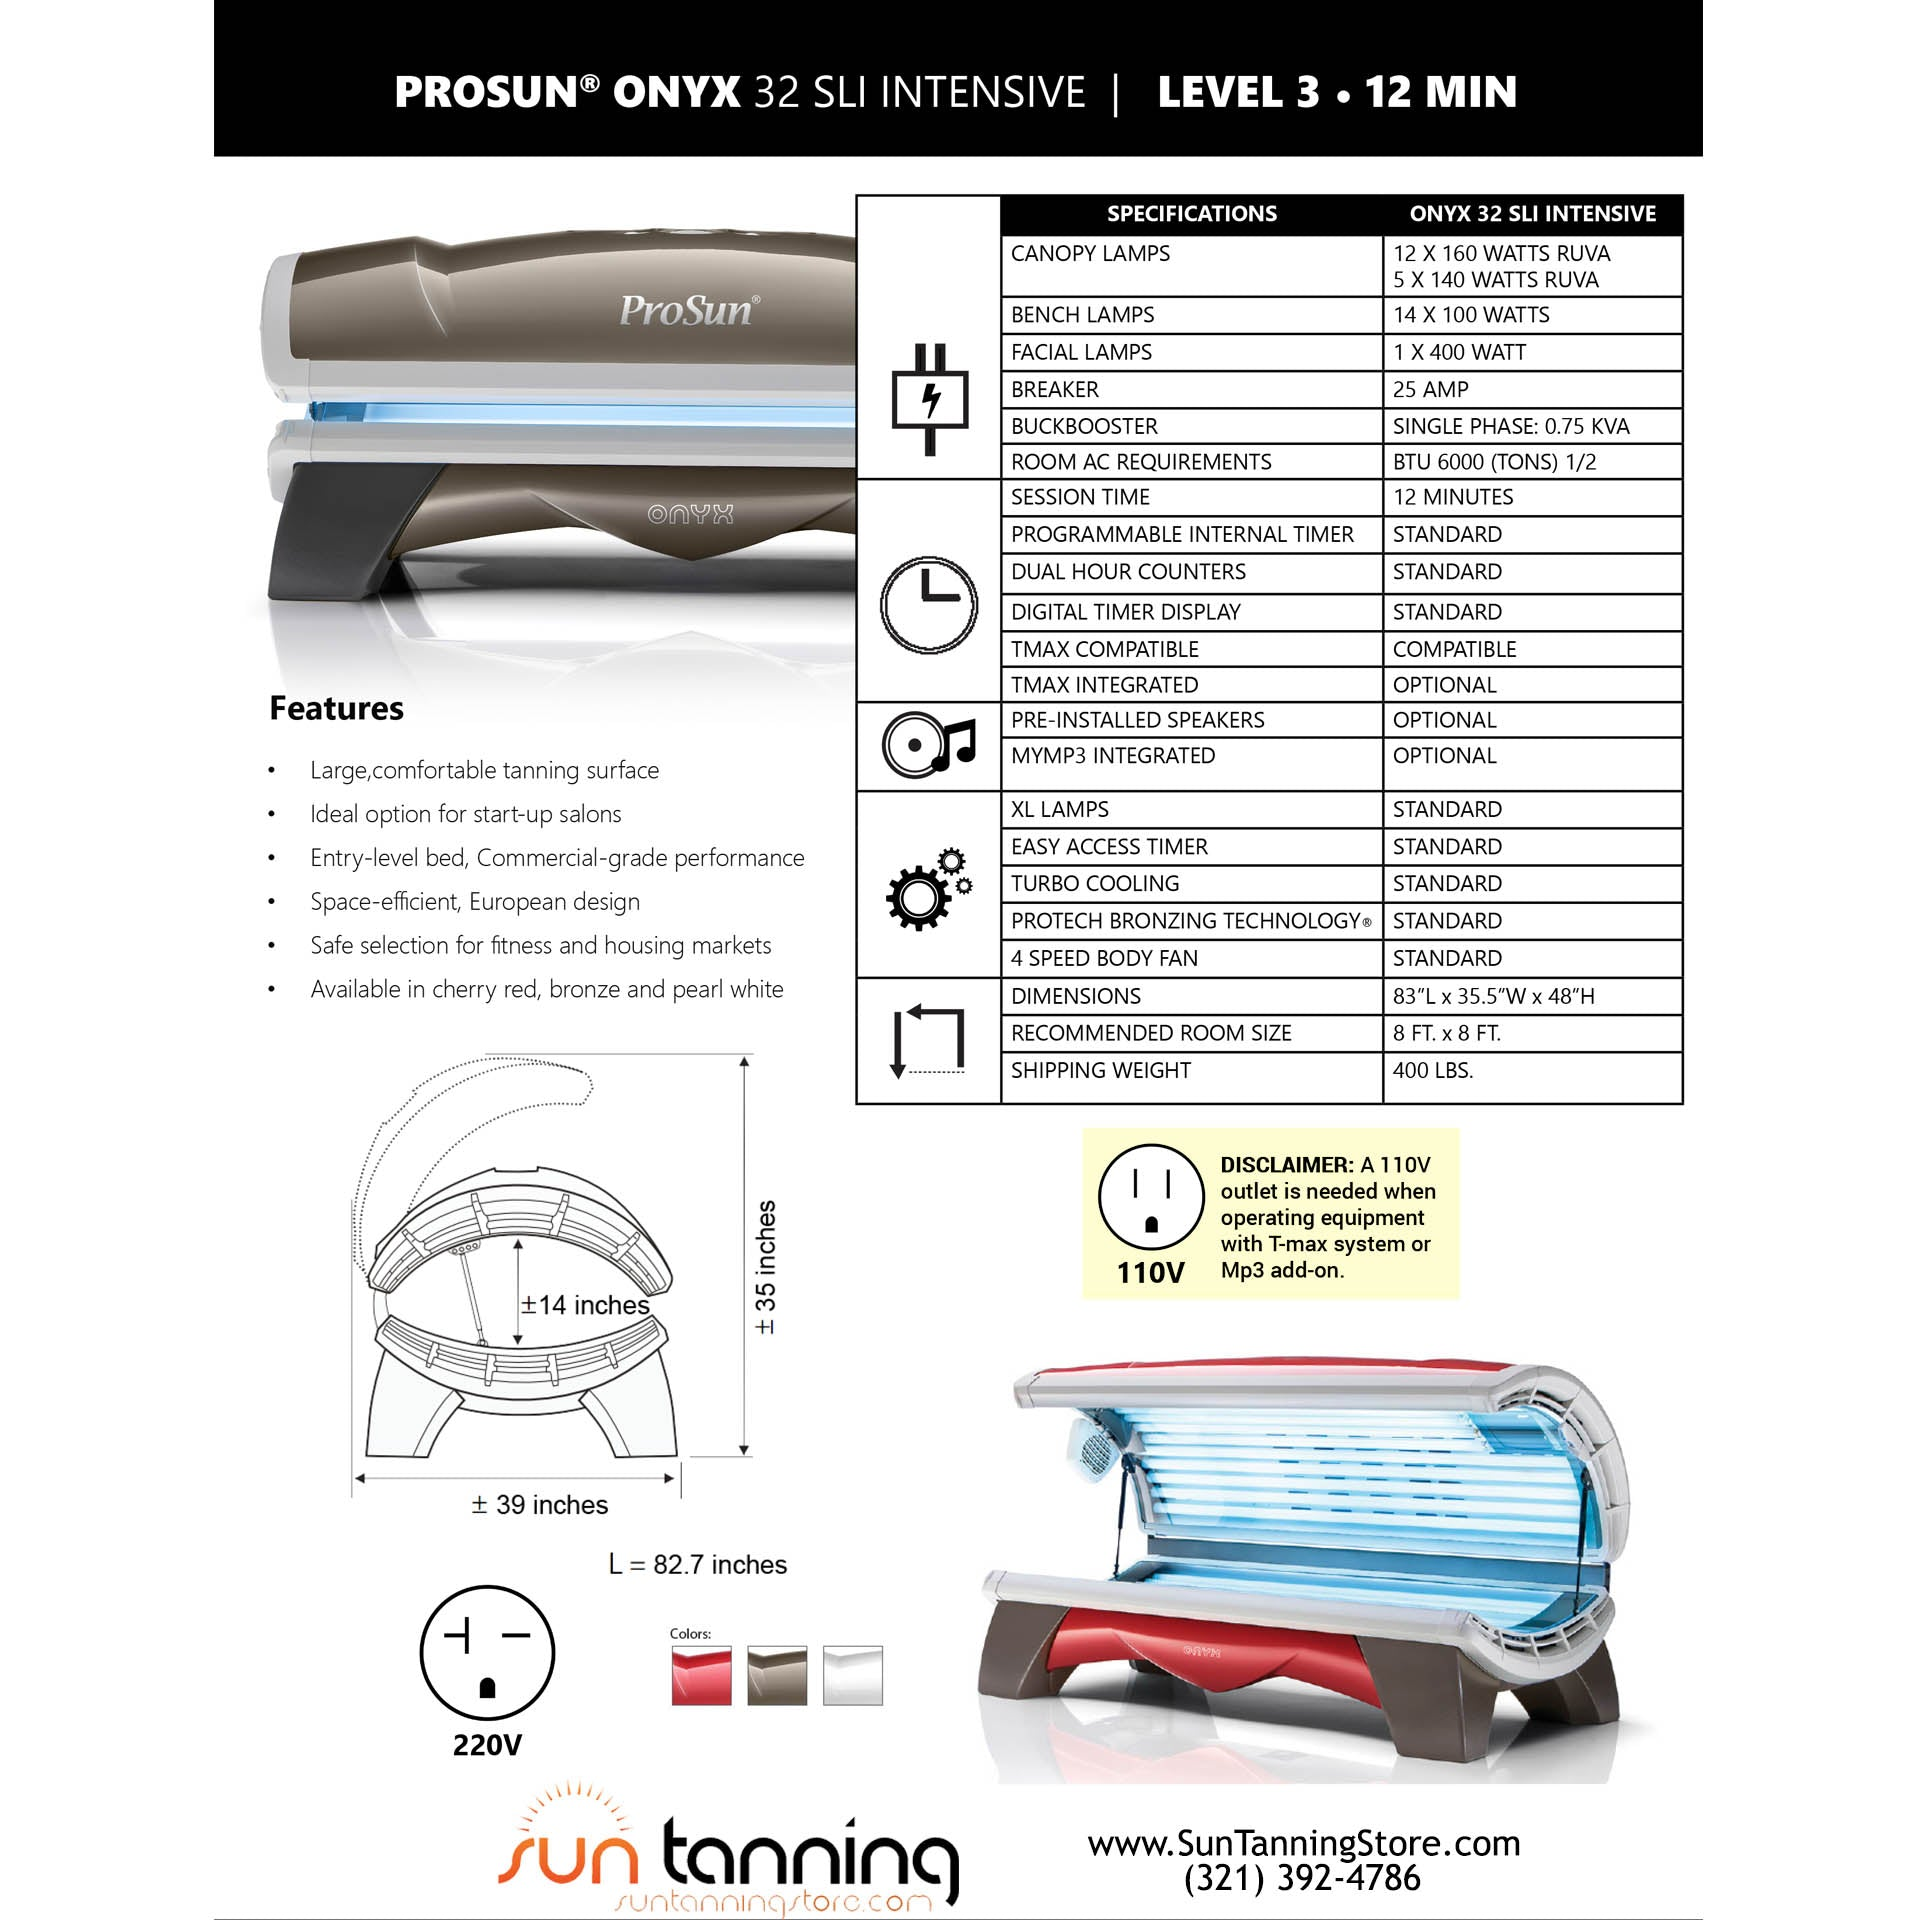 ProSun Onyx 32 SLi Intensive Level 3 Commercial Tanning Bed | $0 00